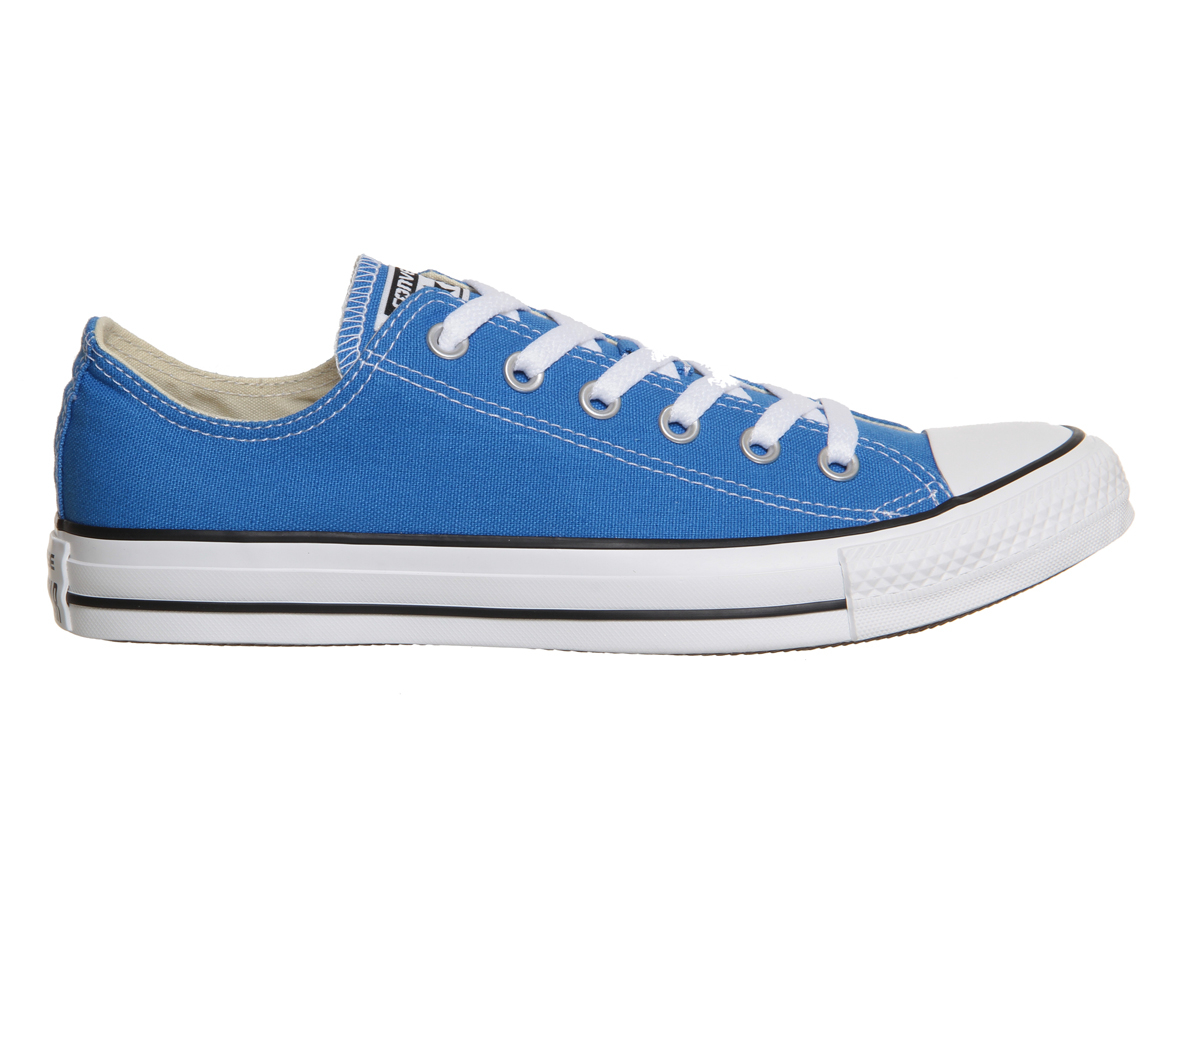 converse all star low in blue sapphire lyst. Black Bedroom Furniture Sets. Home Design Ideas